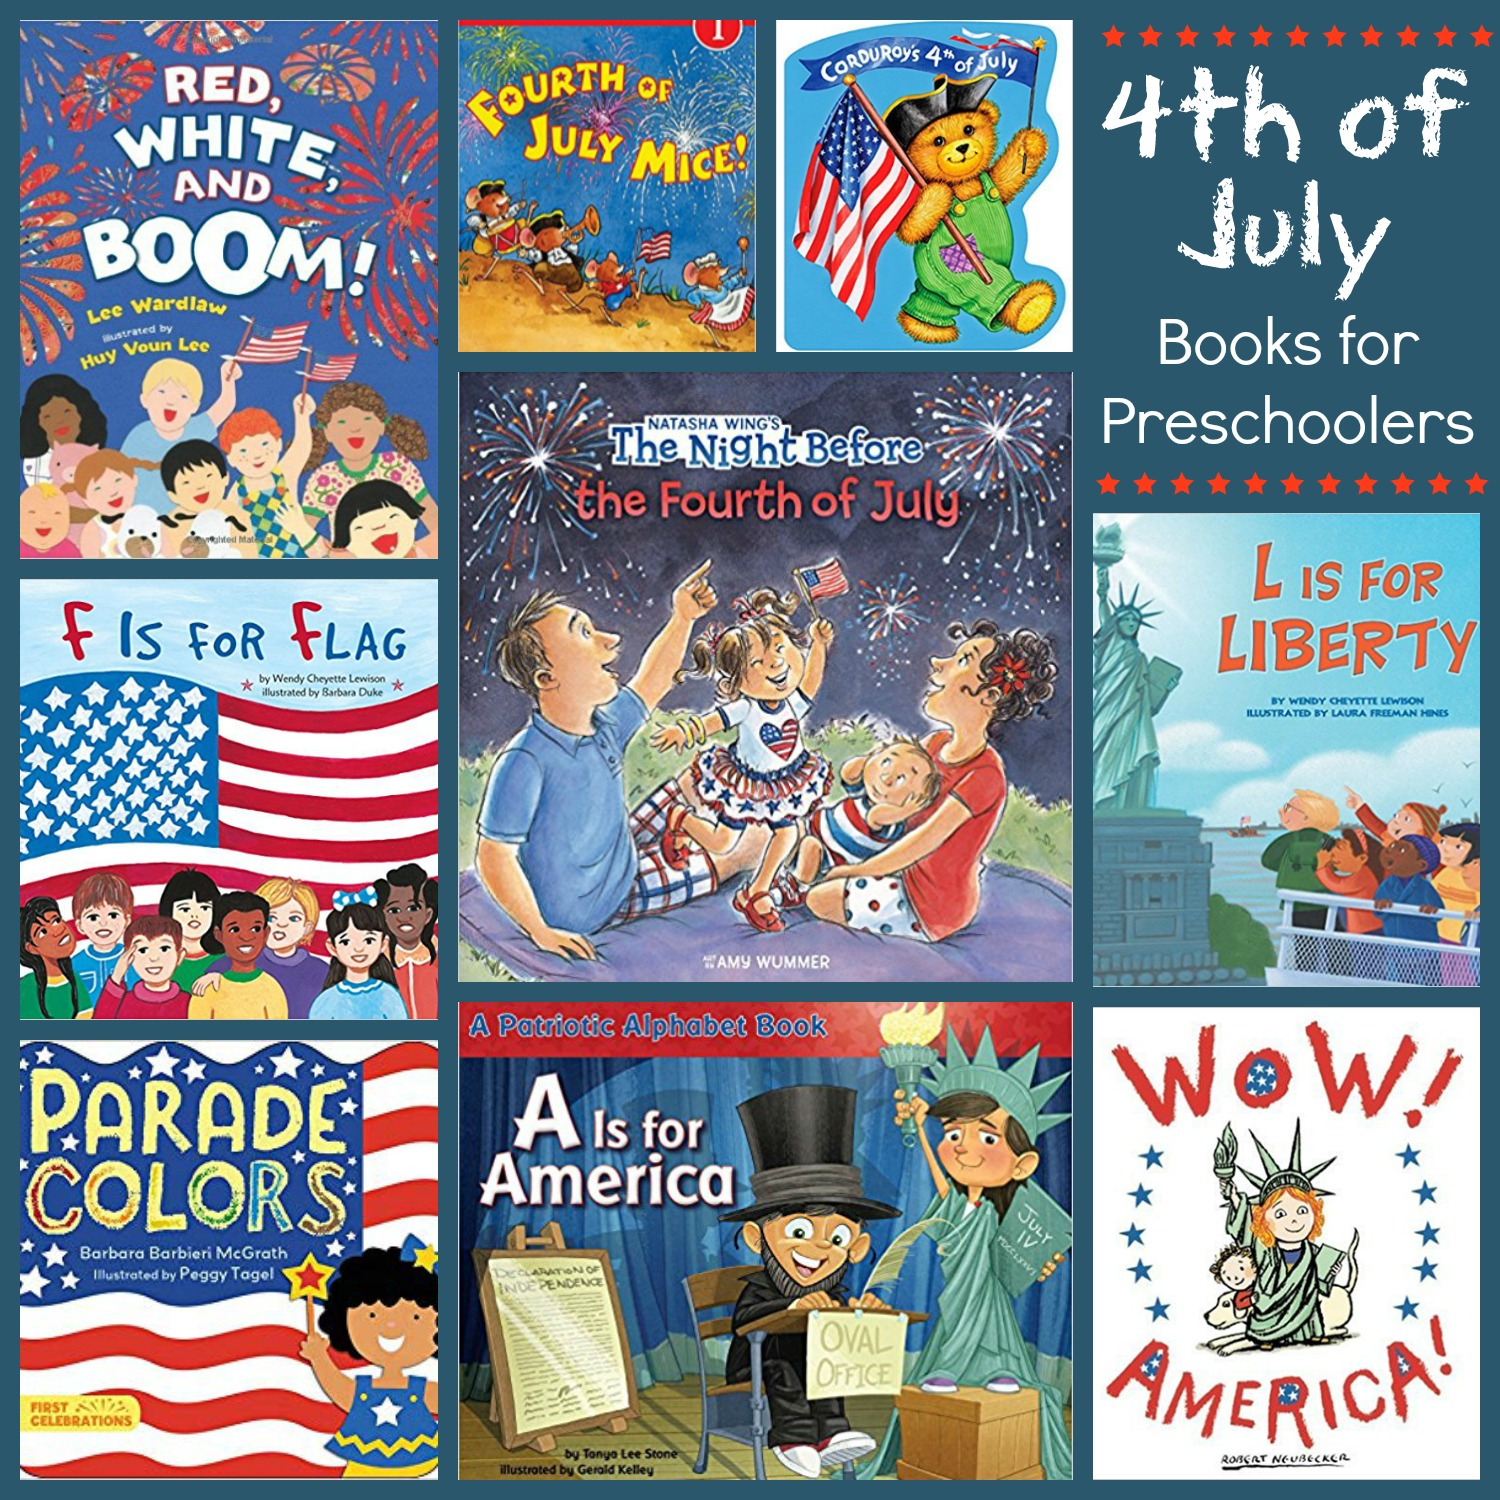 Books to read to kids on the 4th of July